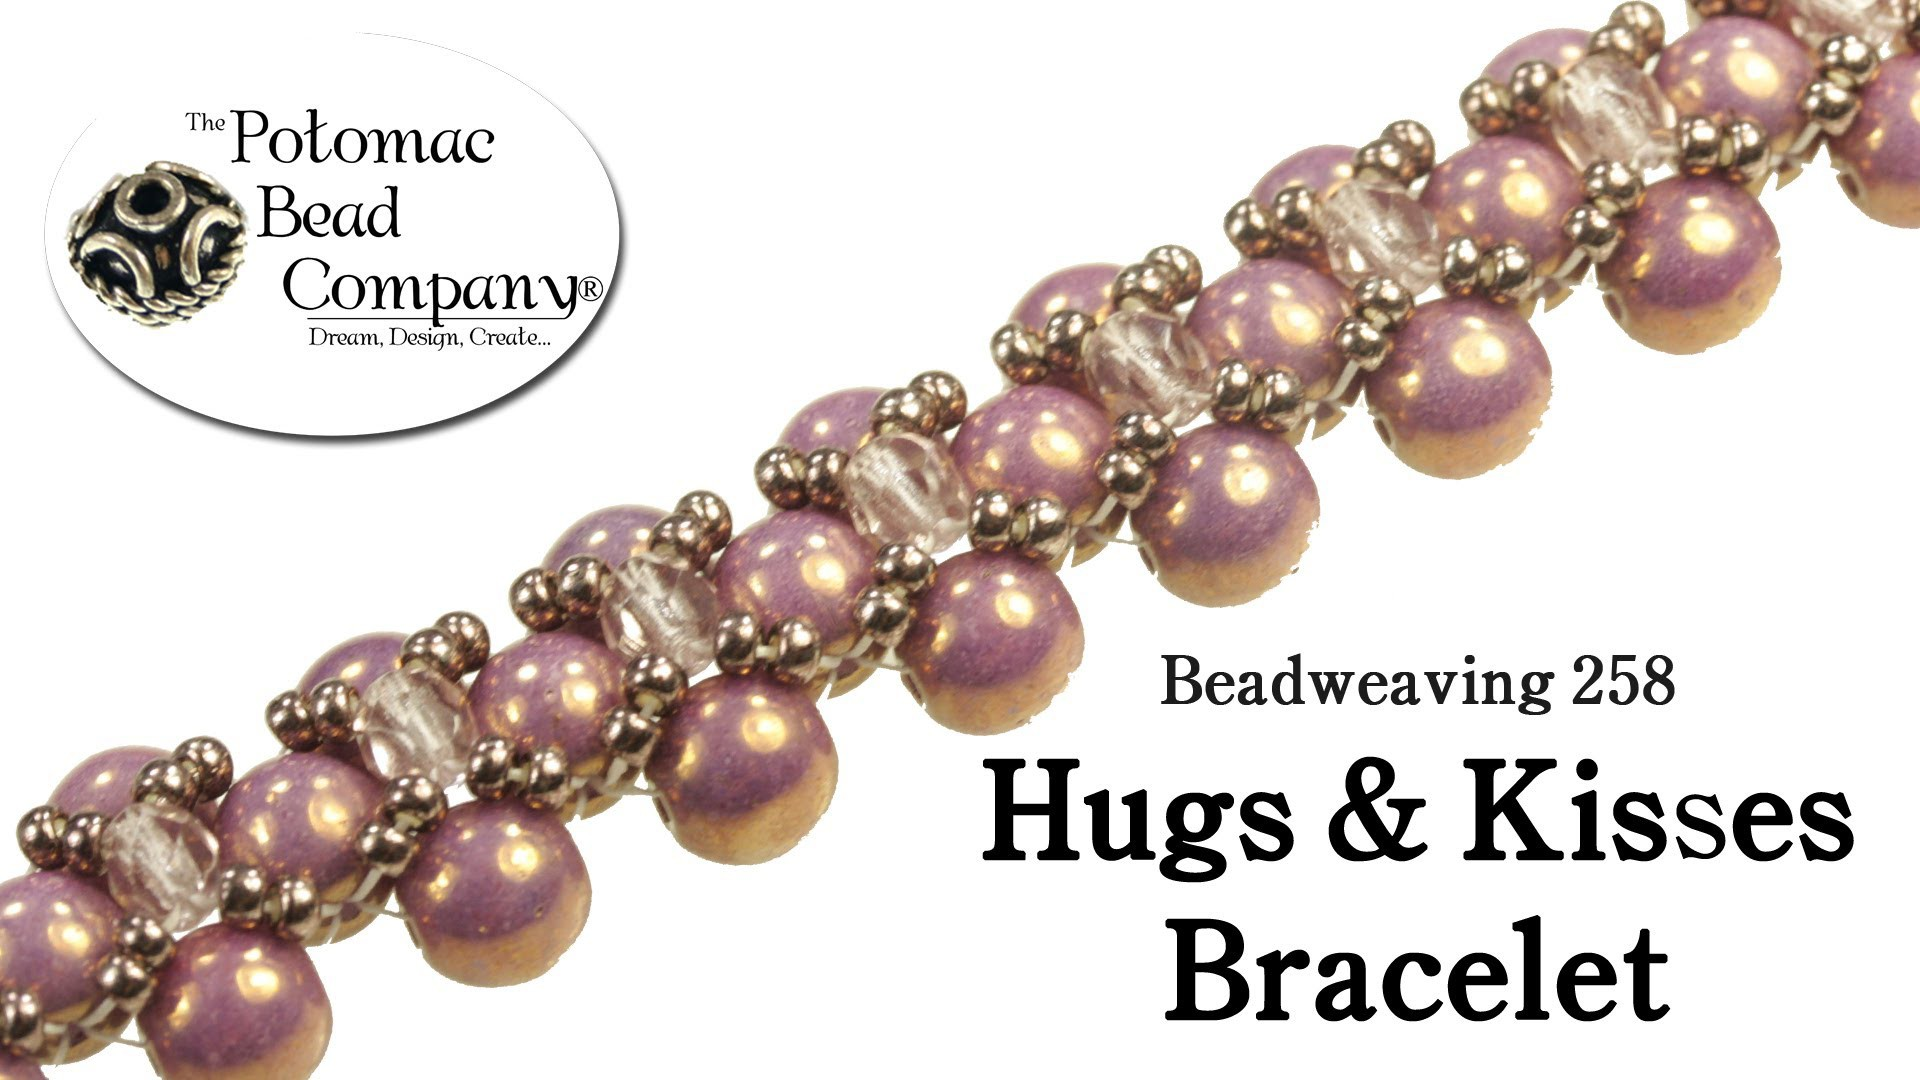 How to Make a Hugs & Kisses Bracelet or Necklace (Beadweaving 258)